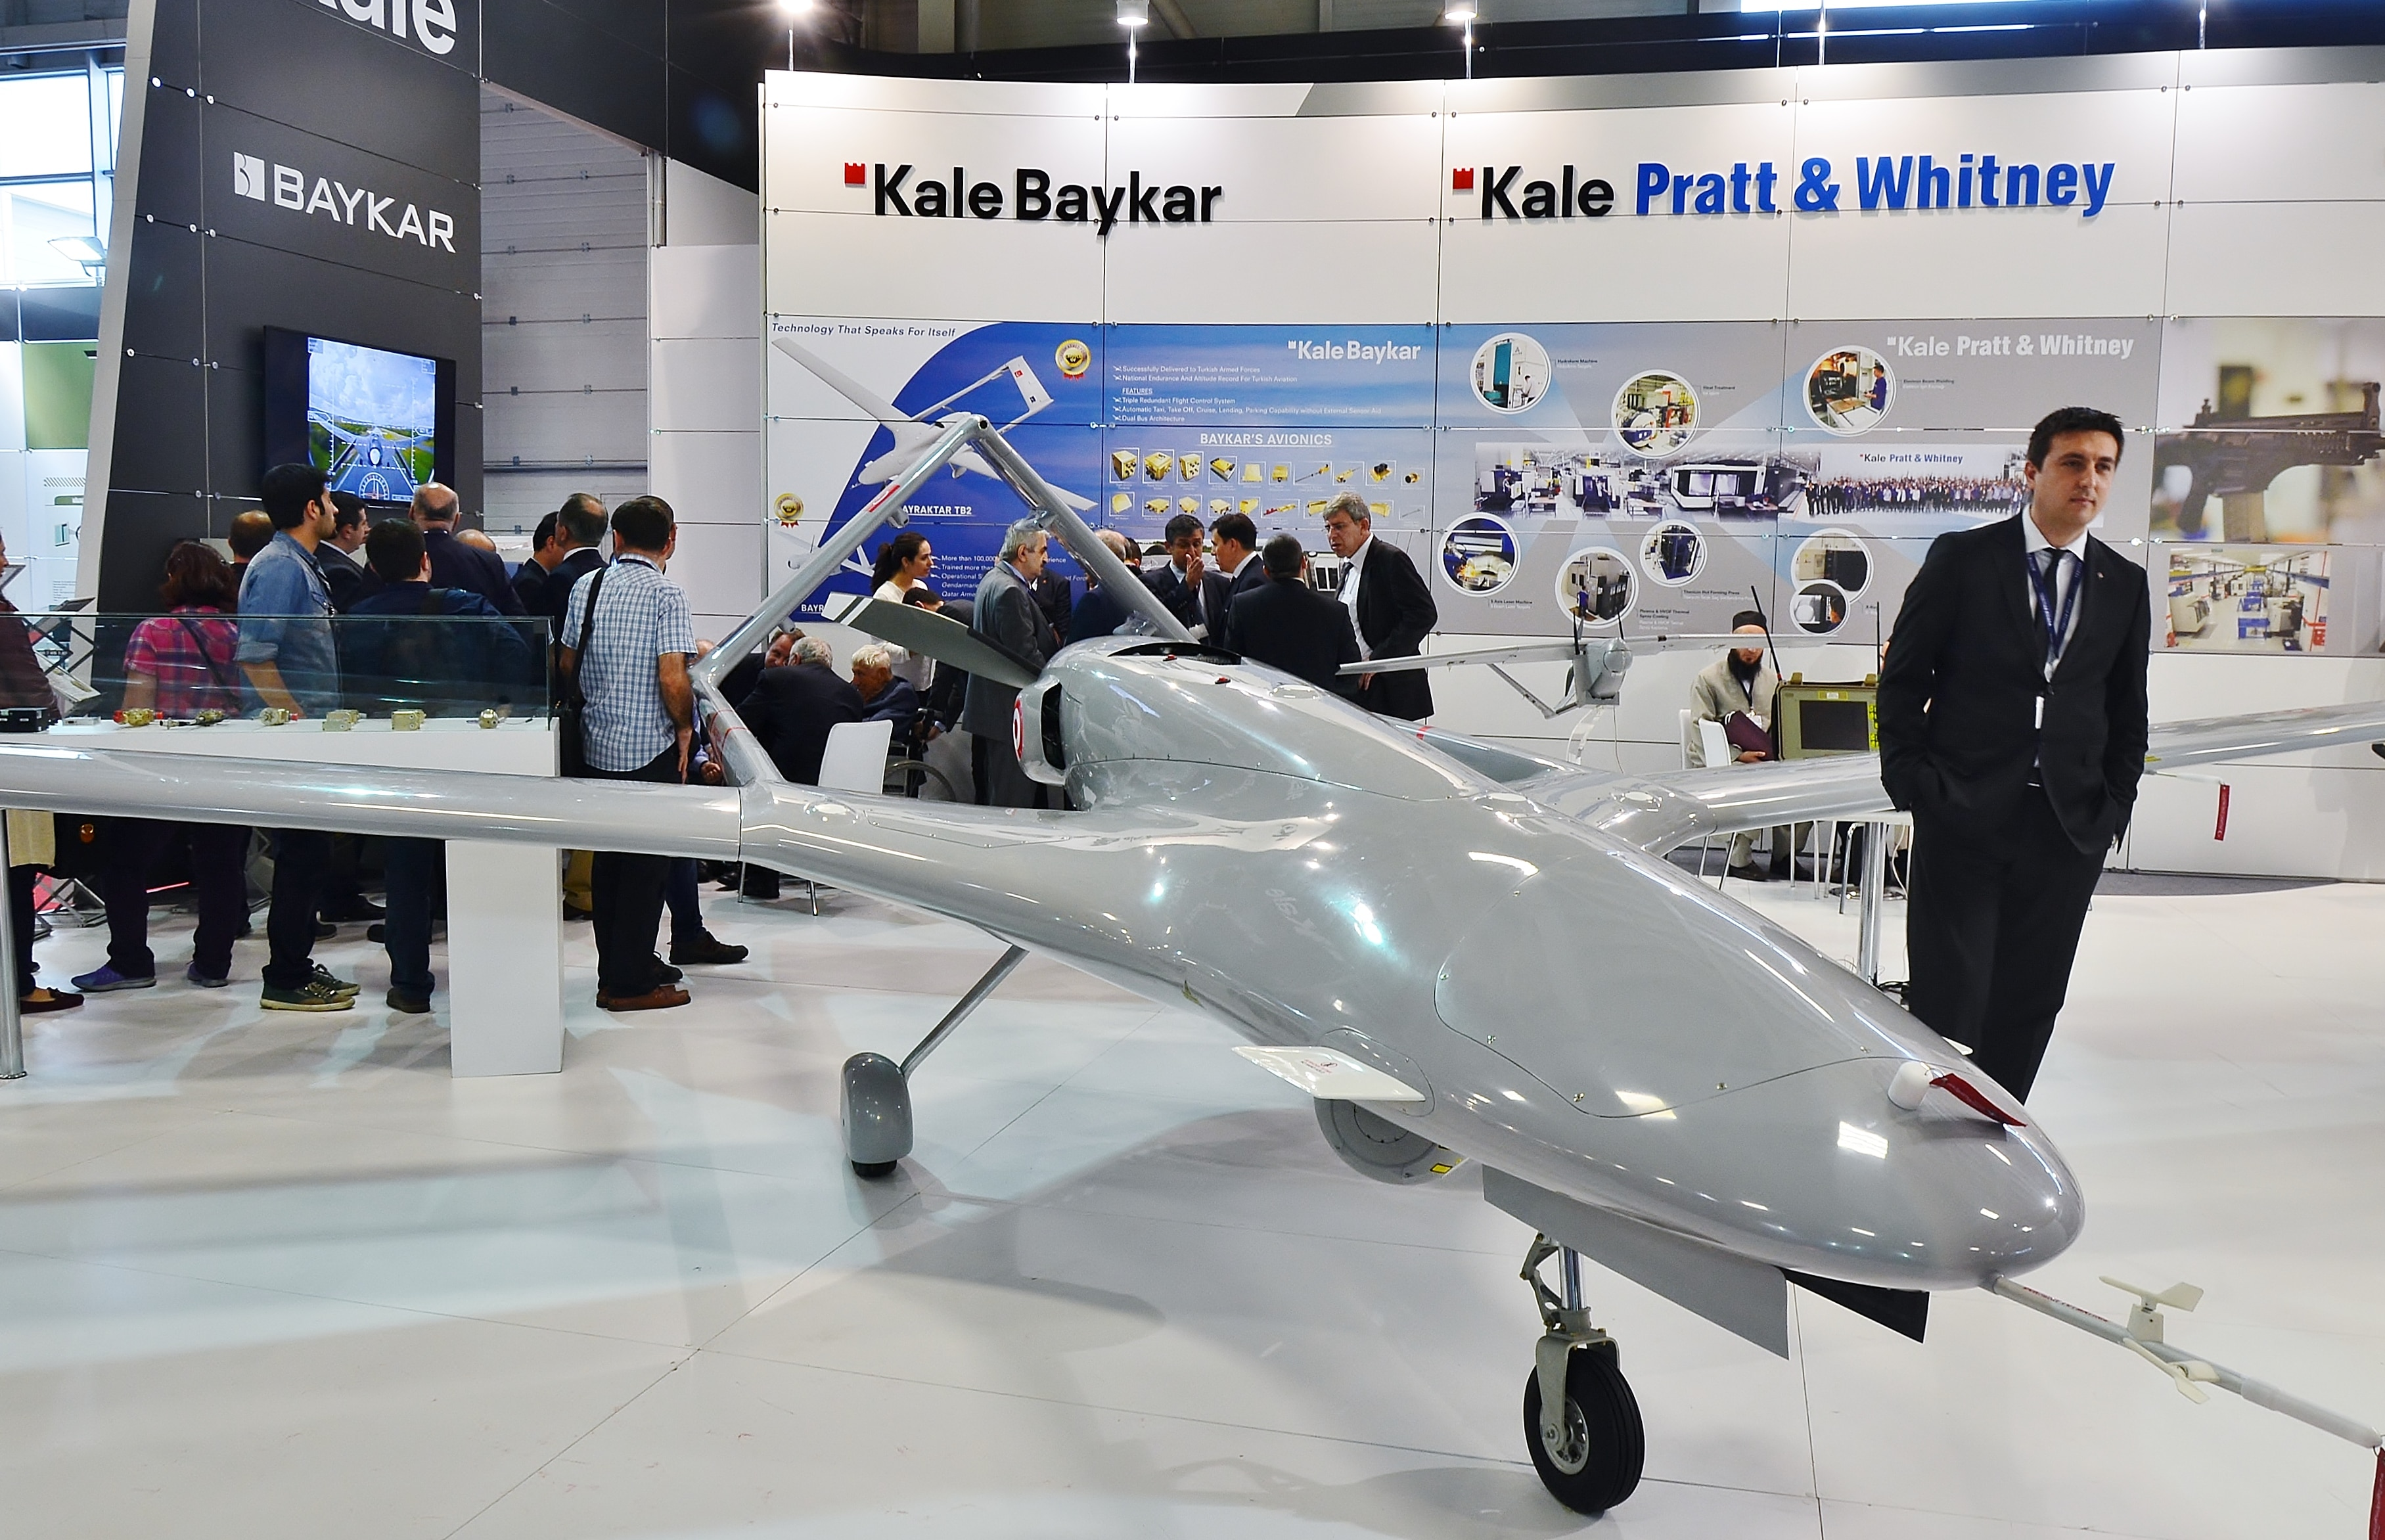 Turkey gets additional drones to fight ISIS, Kurds